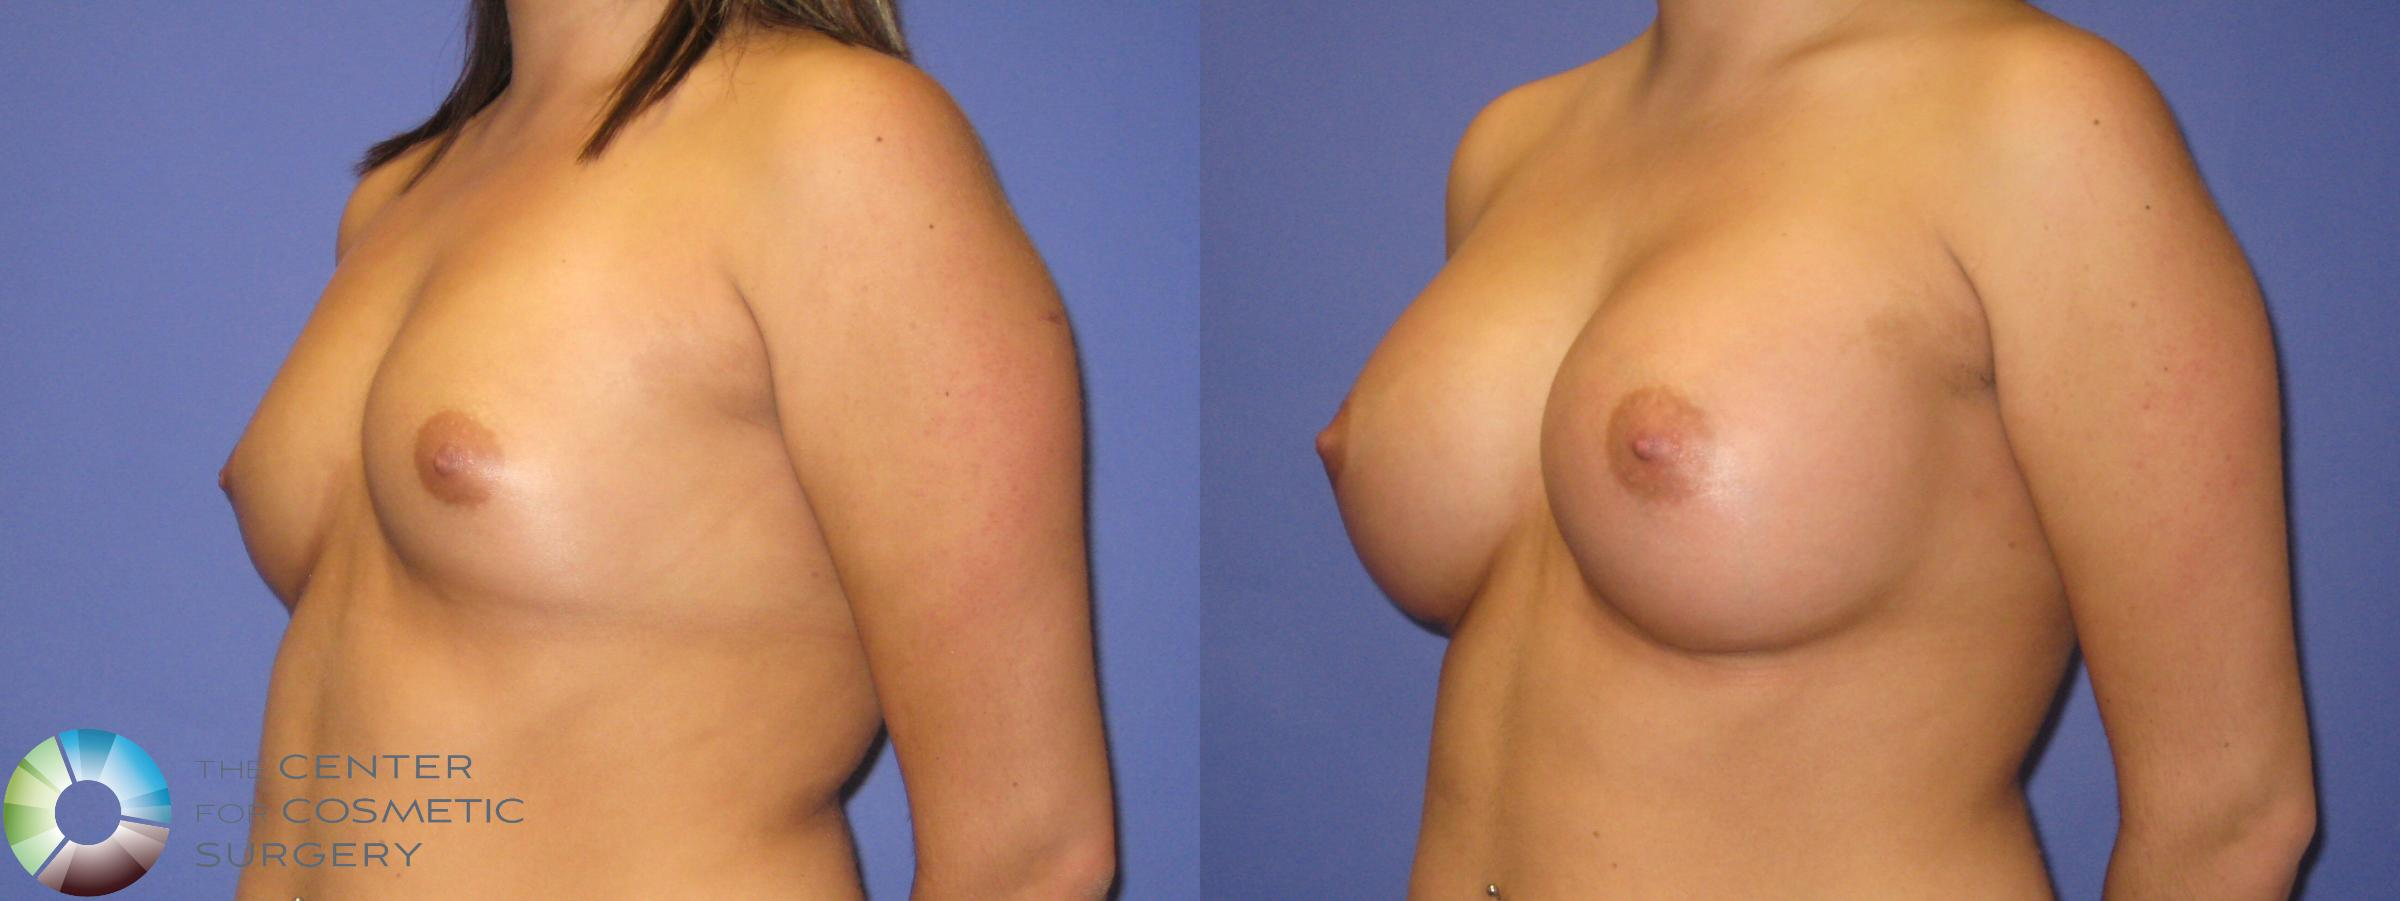 Breast Augmentation Case 352 Before & After View #2 | Golden, CO | The Center for Cosmetic Surgery